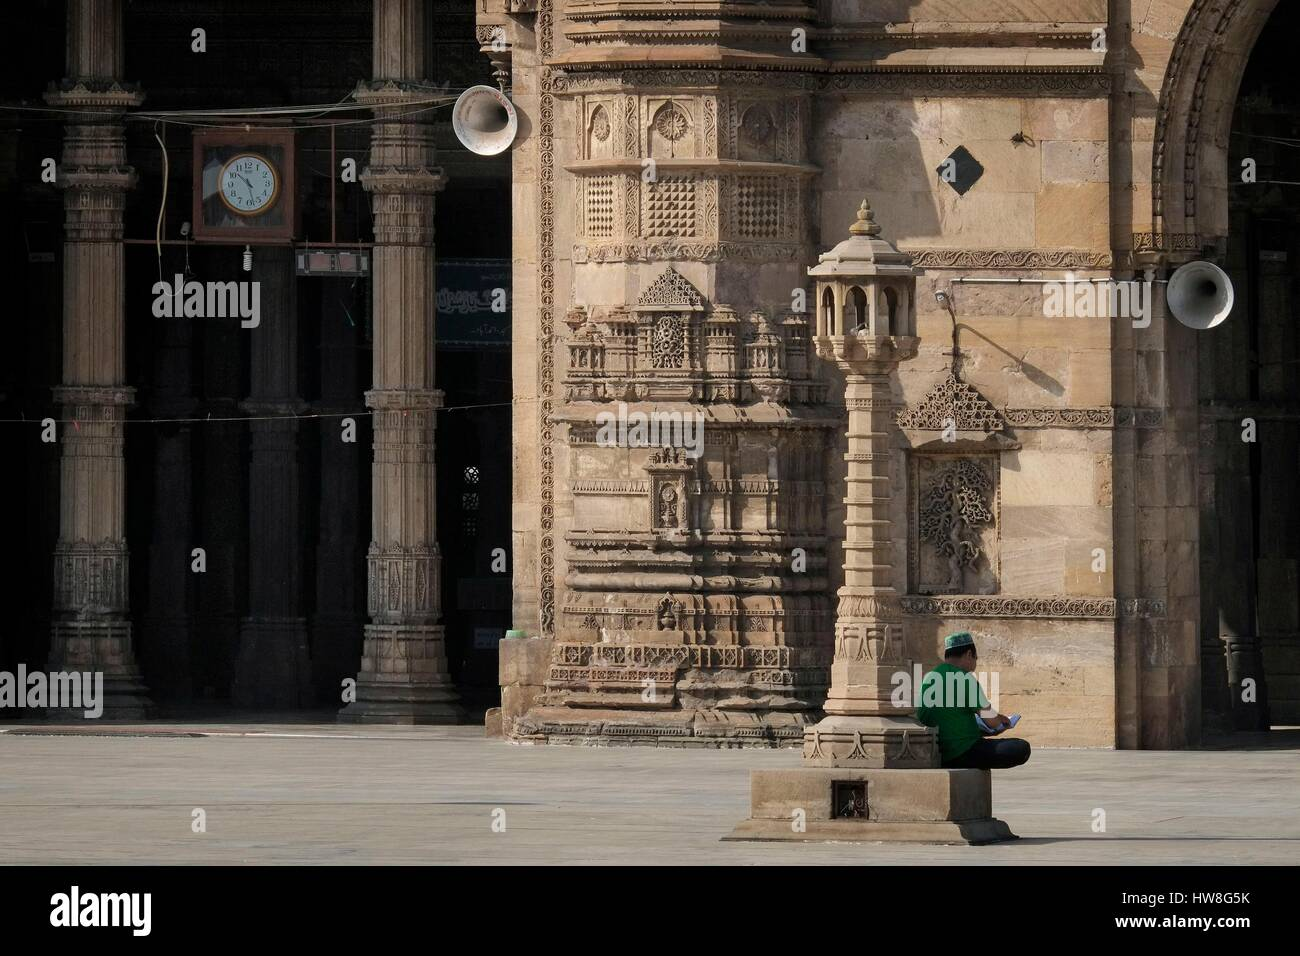 India, Gujarat State, Ahmedabad, listed as World Heritage by UNESCO, the Jami Masjid is the oldest mosque of Ahmedabad, - Stock Image